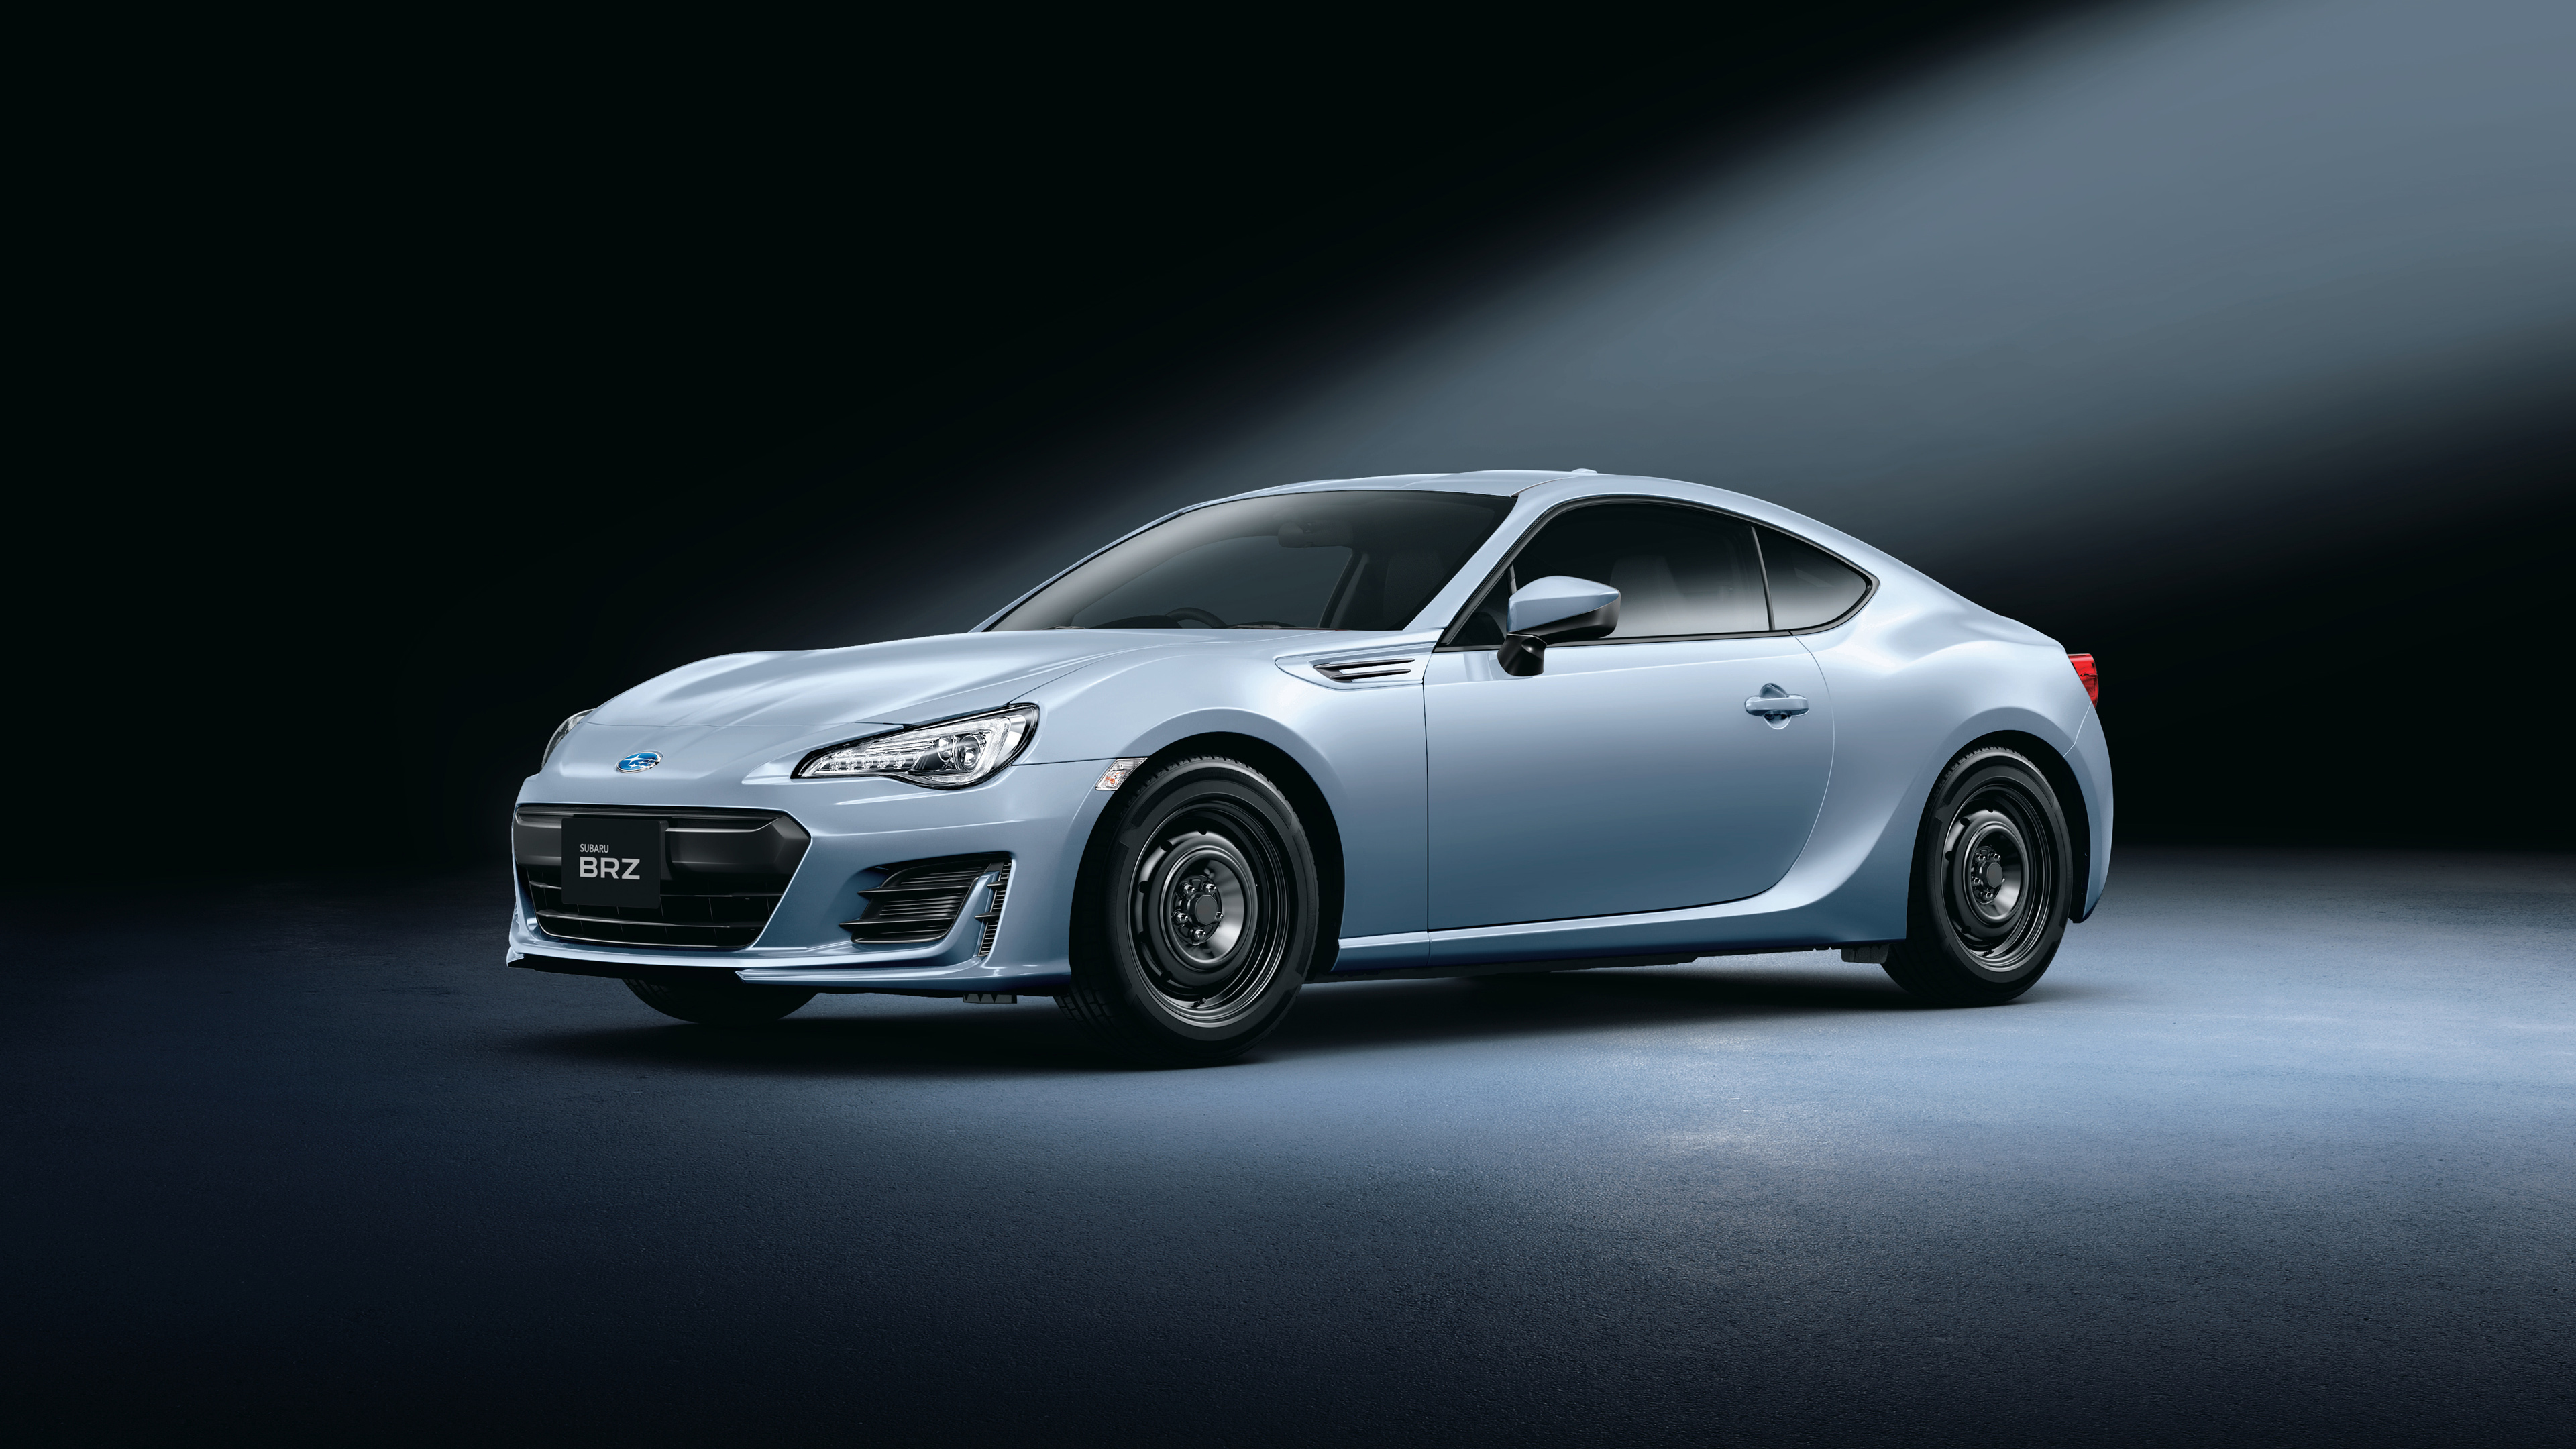 2016 Subaru BRZ Wallpaper | HD Car Wallpapers | ID #6828